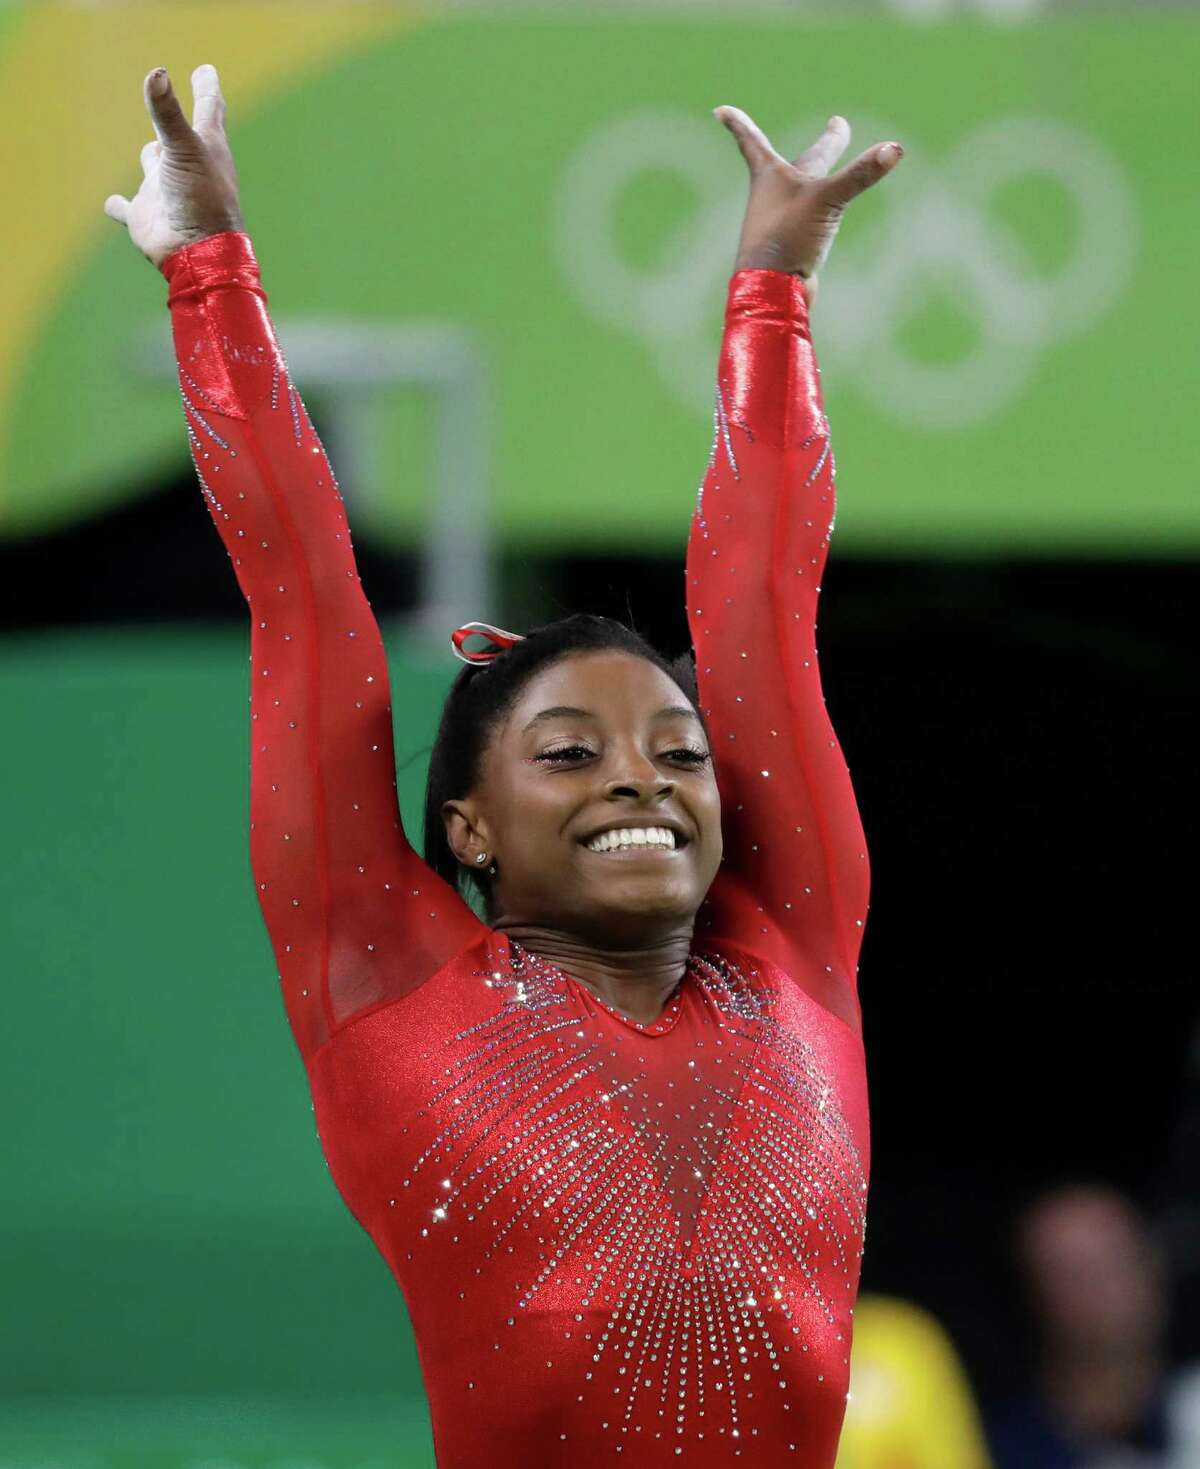 Spring's Simone Biles completes her routine on the vault Sunday to seal the gold. She had never medaled in the vault.